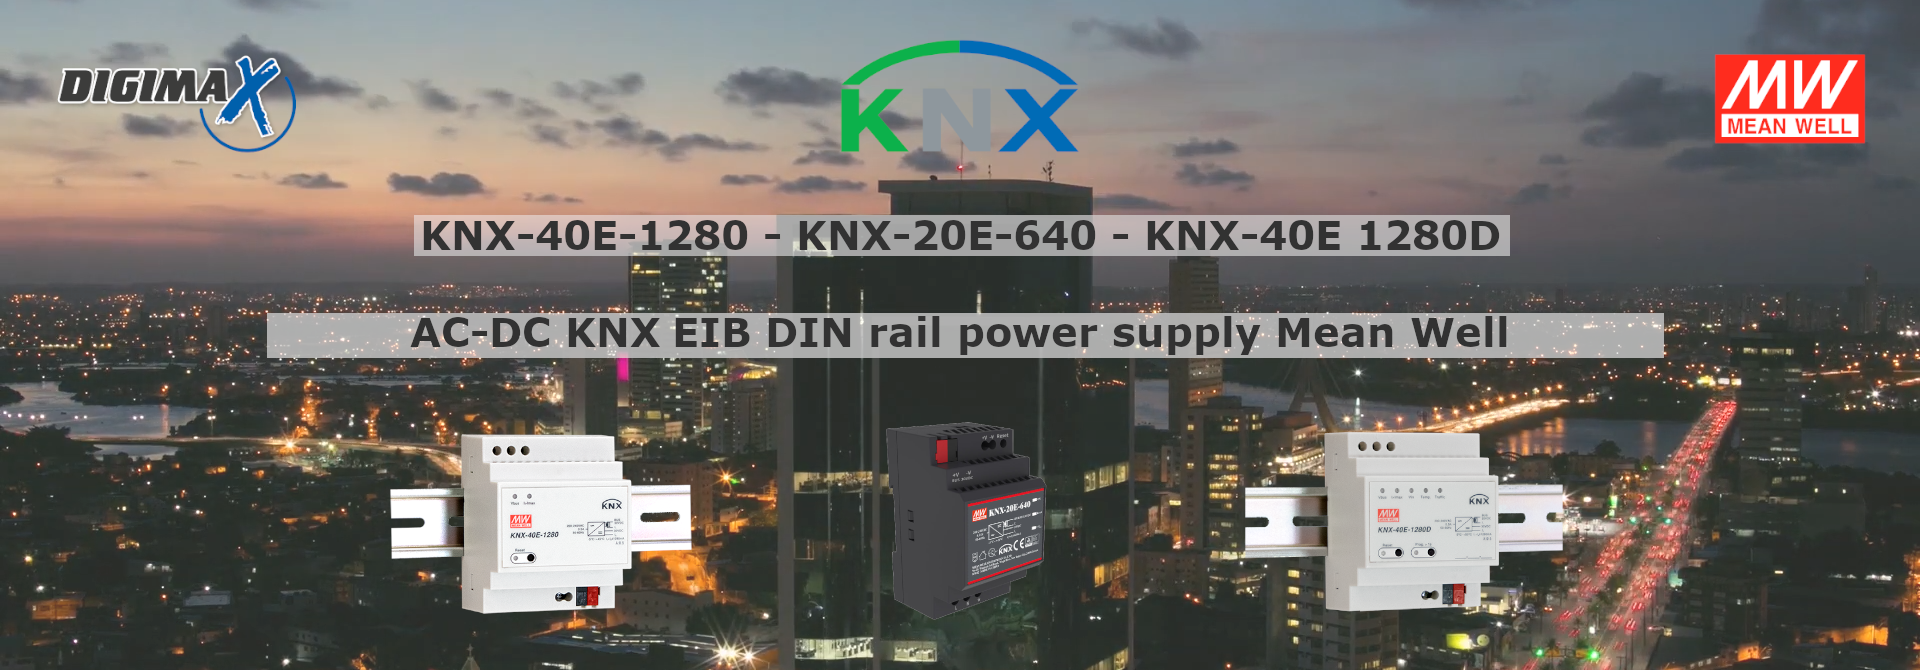 Mean Well bus KNX power supplies for home automation and smart building applications